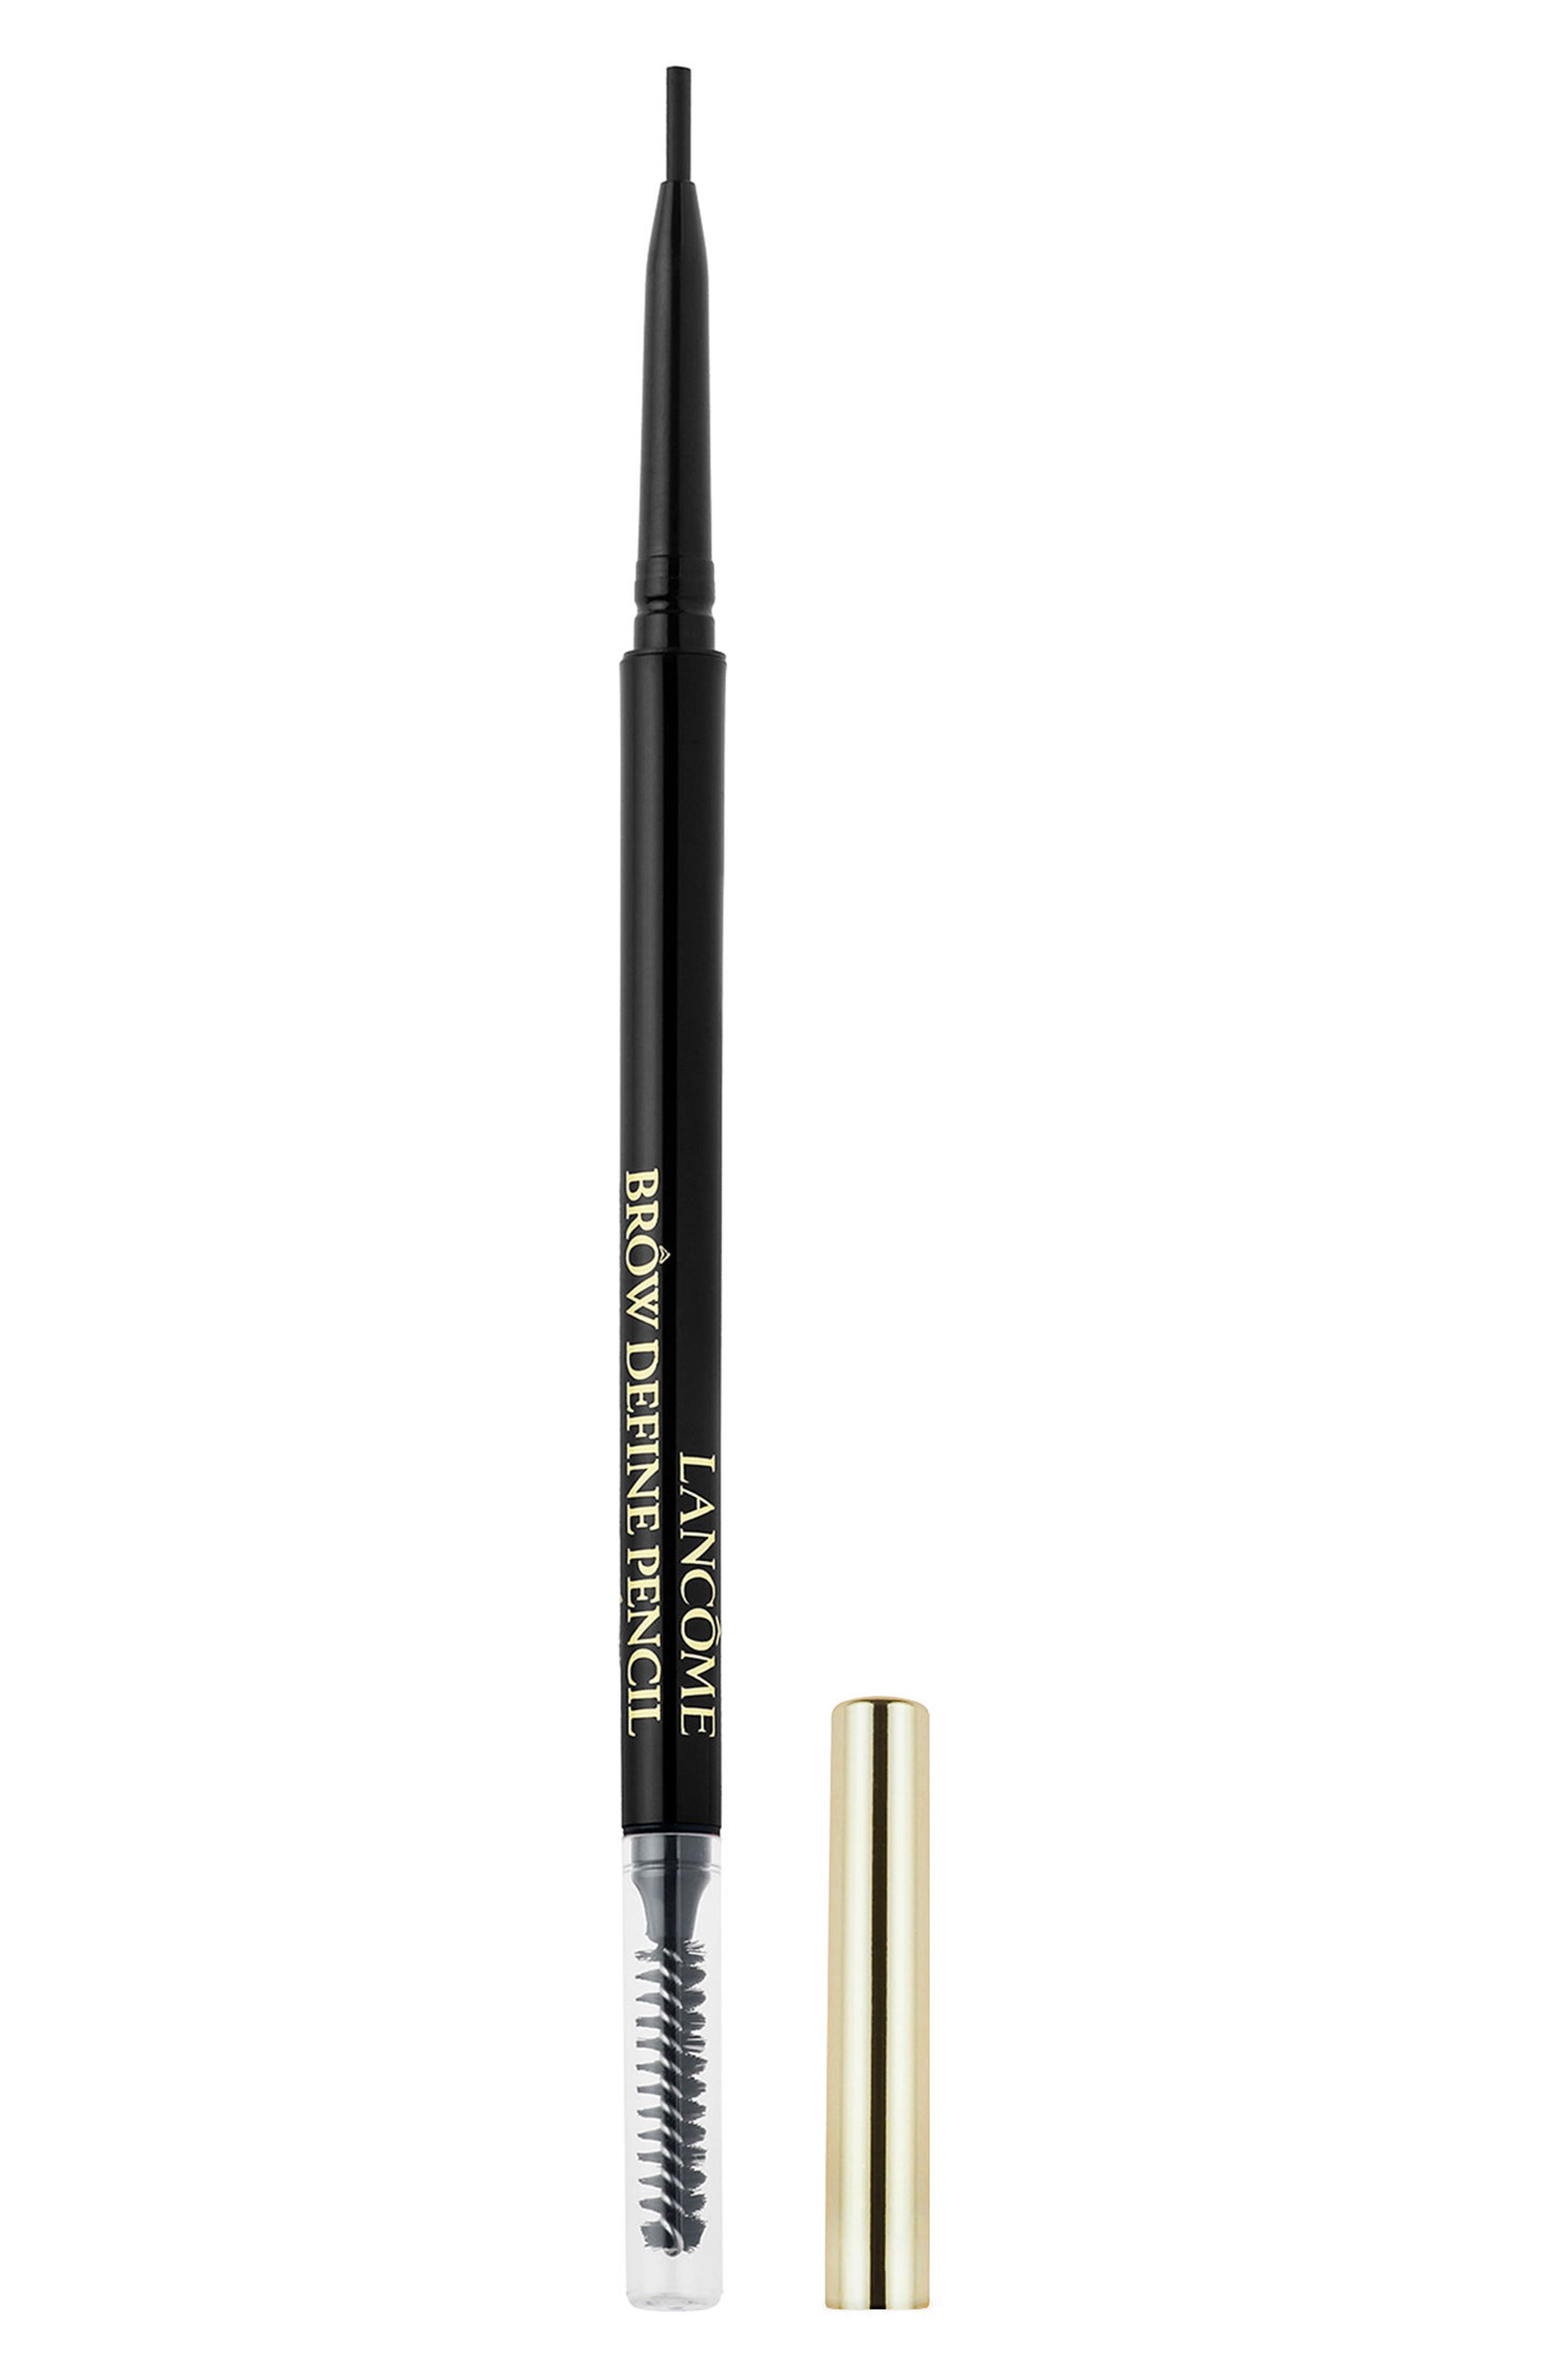 LANCÔME, Brow Define Pencil, Main thumbnail 1, color, BLACK 14